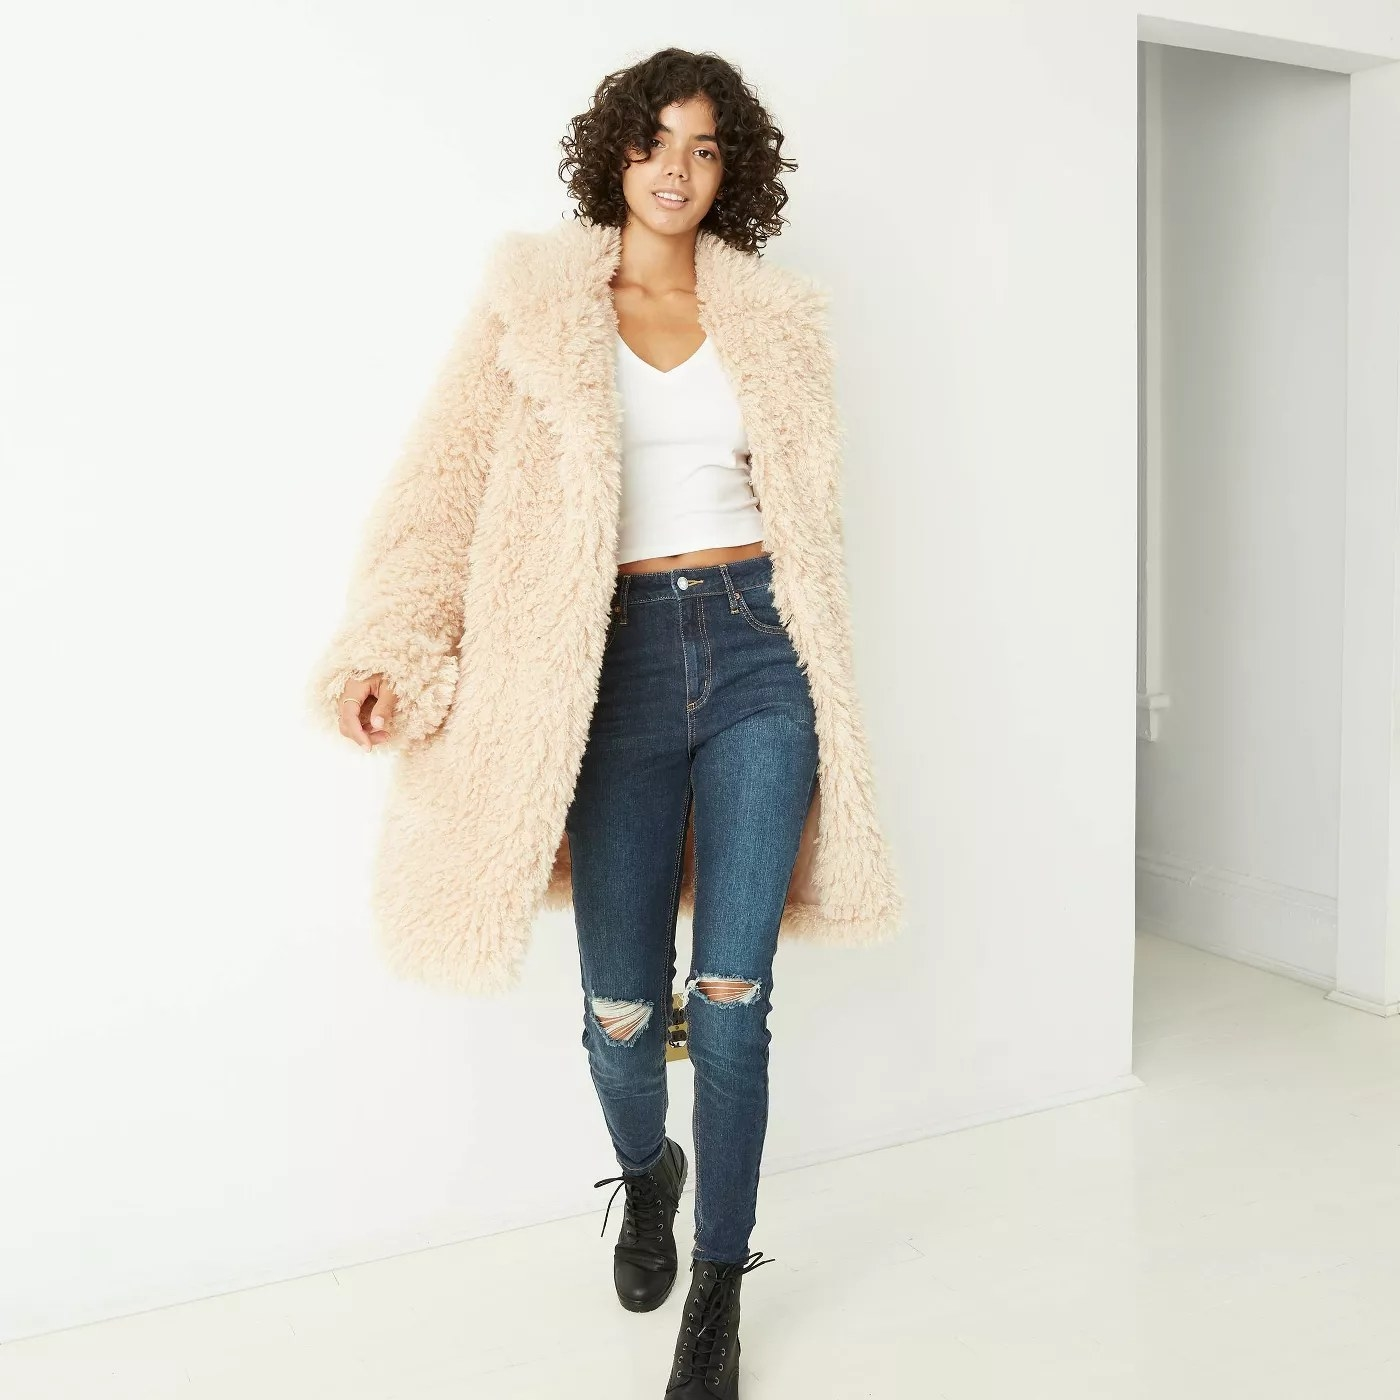 Light beige jacket that is knee length. Model is wearing jeans, white tank, and black combat boots.